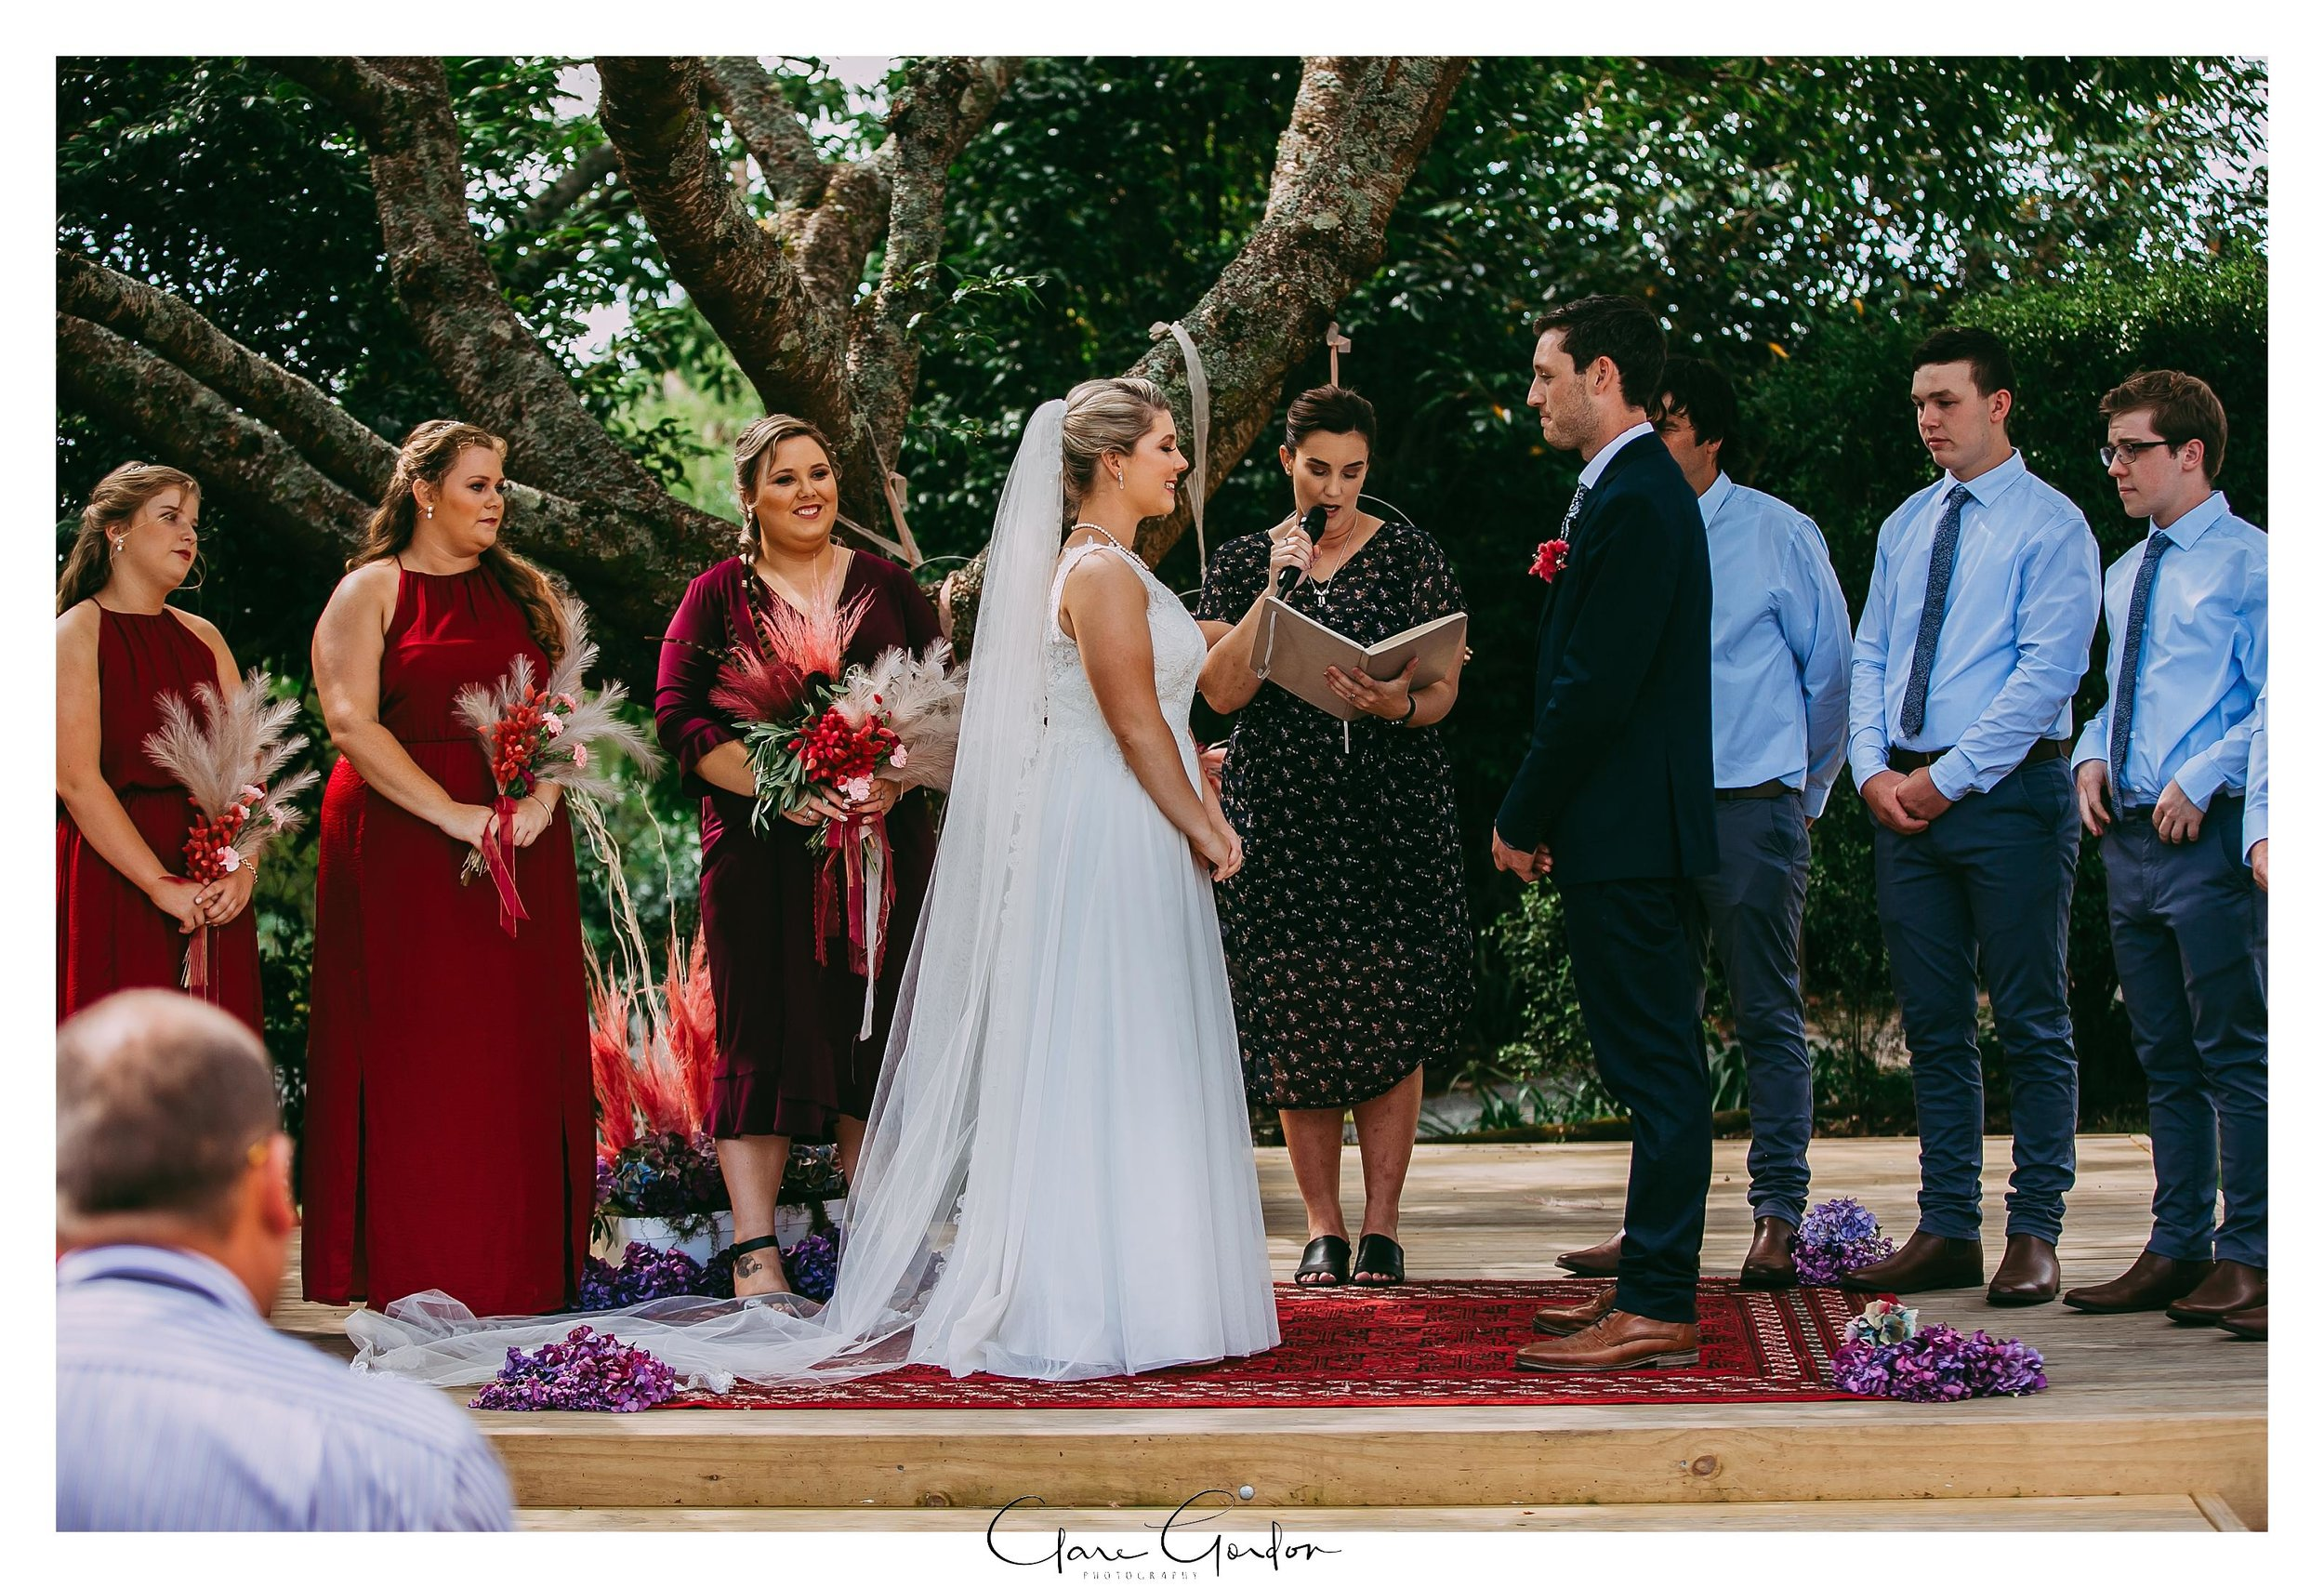 Charlemagne-Lodge-Tauranga-wedding-photo (90).jpg